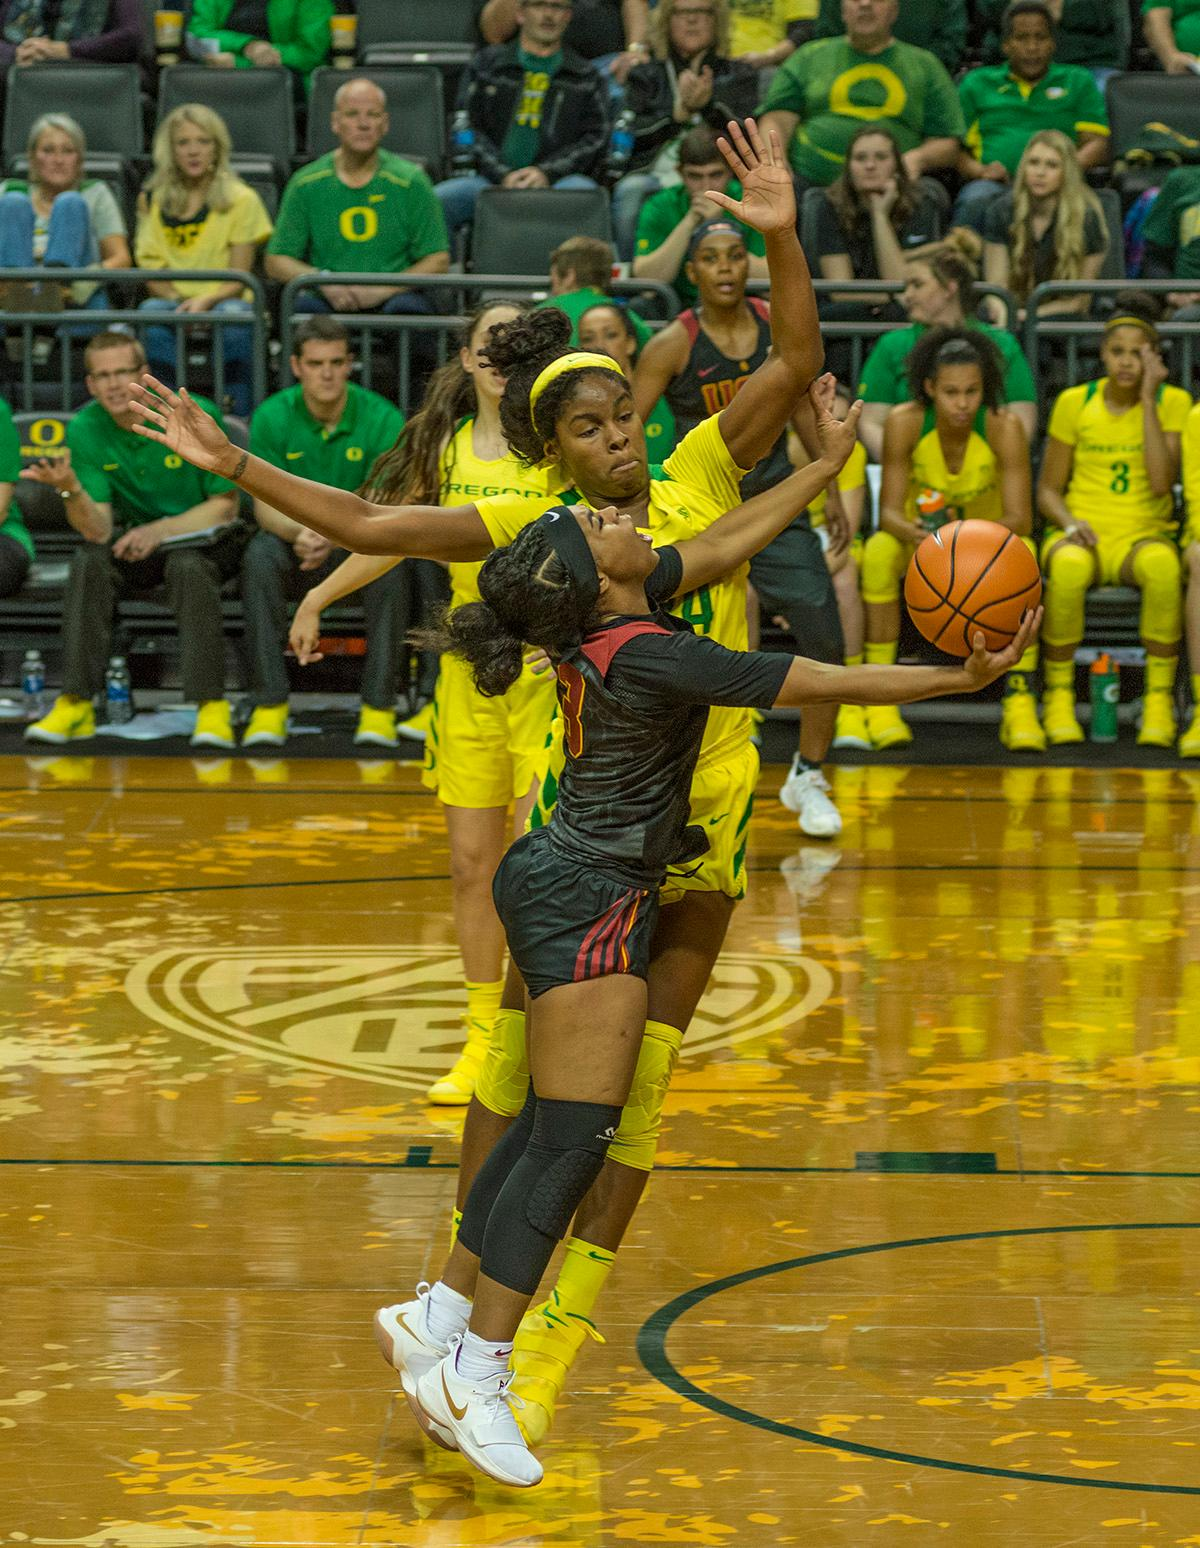 Oregon Ducks Ruthy Hebard (#24, yellow jersey) attempts to block the shot of USC Trojans Minyon Moore (#3). The Oregon Ducks defeated the USC Trojans 80-74 on Friday at Matthew Knight Arena in a game that went into double overtime. Lexi Bando sealed the Ducks' victory by scoring a three-pointer in the closing of the game. Ruthy Hebard set a new NCAA record of 30 consecutive field goals over three games, the old record being 28. Ruthy Hebard got a double-double with 27 points and 10 rebounds, Mallory McGwire also had 10 rebounds. The Ducks had four players in double digits: Ruthy Hebard with 27; Maite Cazorla with 17; Sabrina Ionescu with 15; and Lexi Bando with 11. The Ducks are now 24-4, 13-2 in the Pac-12, and are tied for first with Stanford. Photo by Dan Morrison, Oregon News Lab